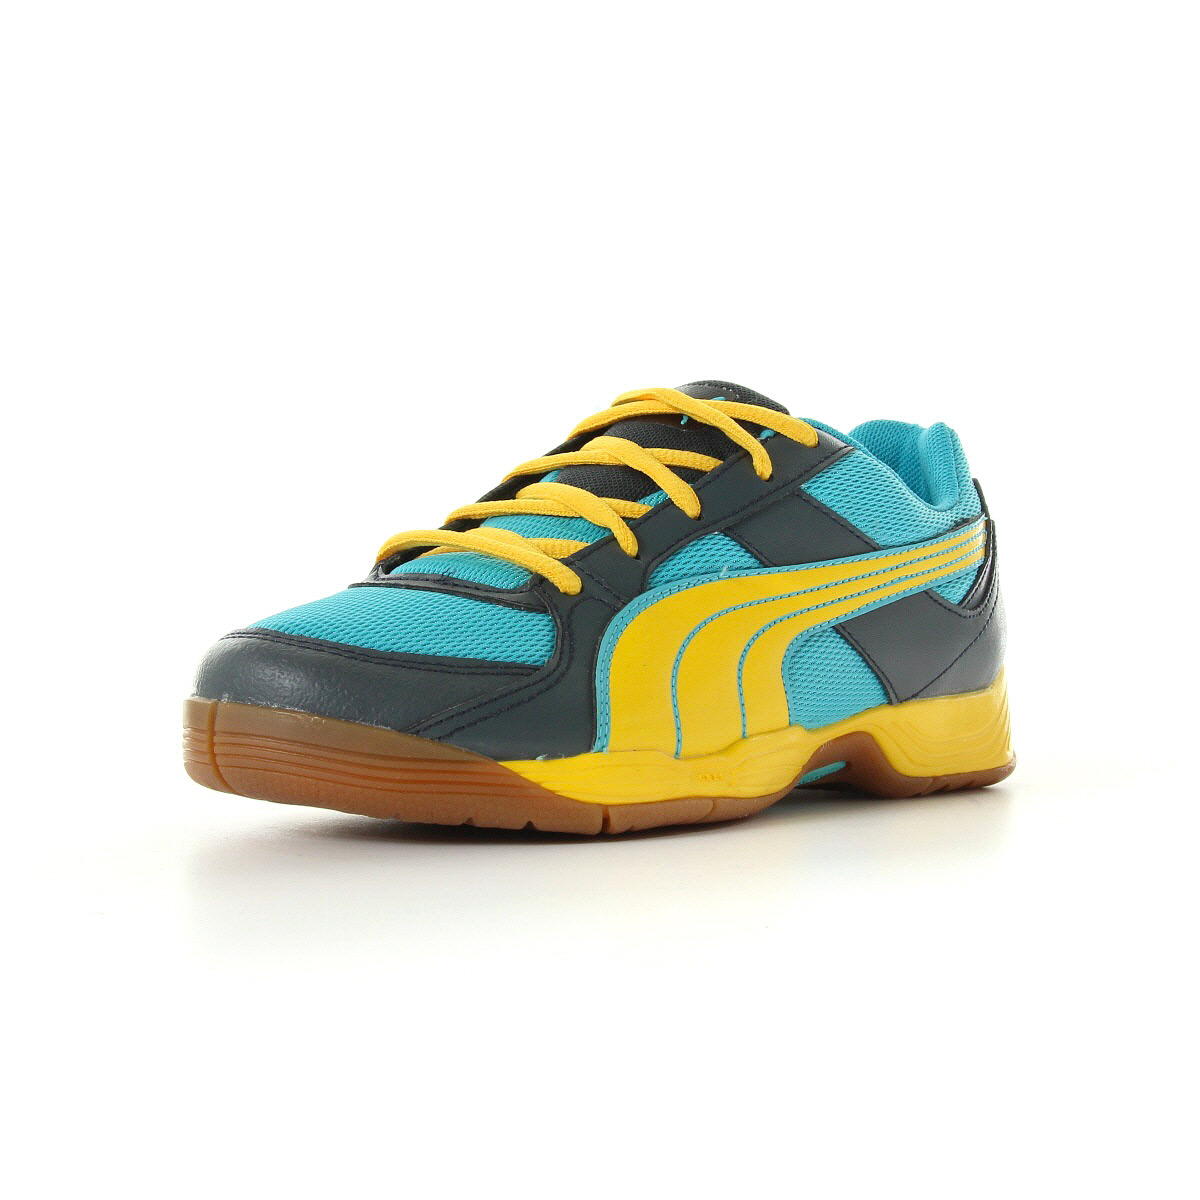 chaussures handball puma gar on vellum 3 jr taille jaune synth tique lacets ebay. Black Bedroom Furniture Sets. Home Design Ideas